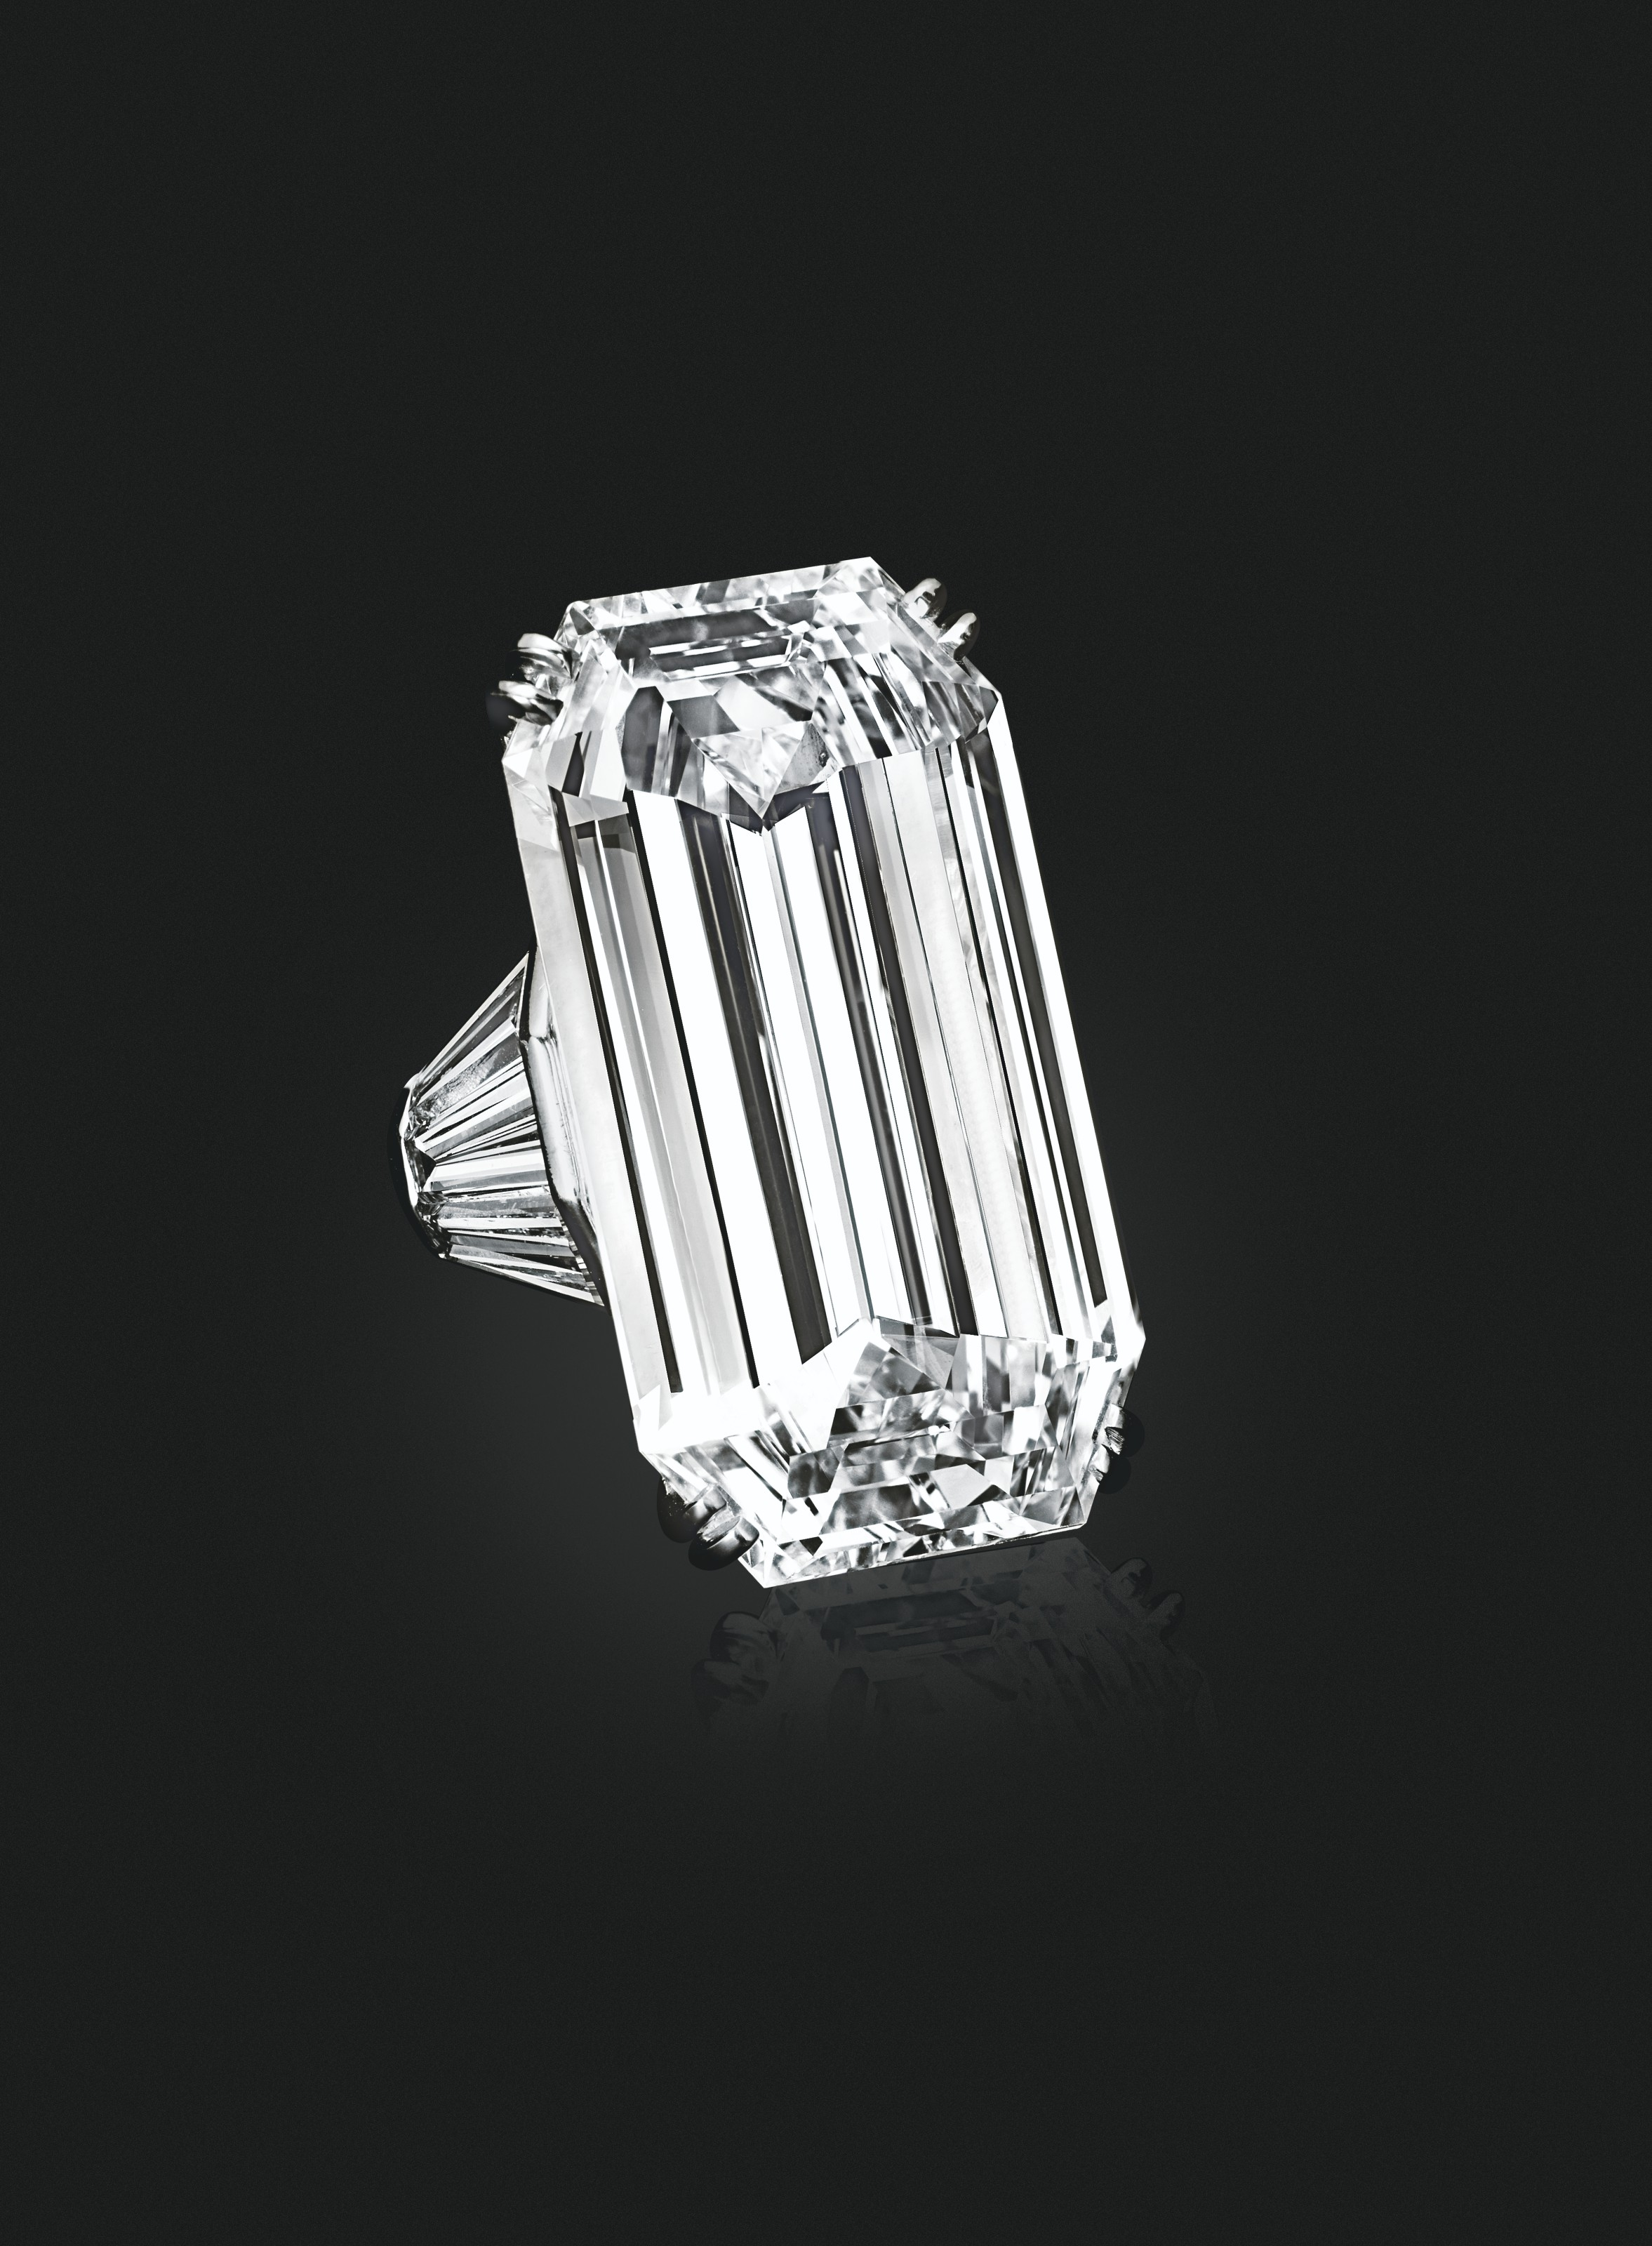 'MIRROR OF PARADISE' A DIAMOND RING